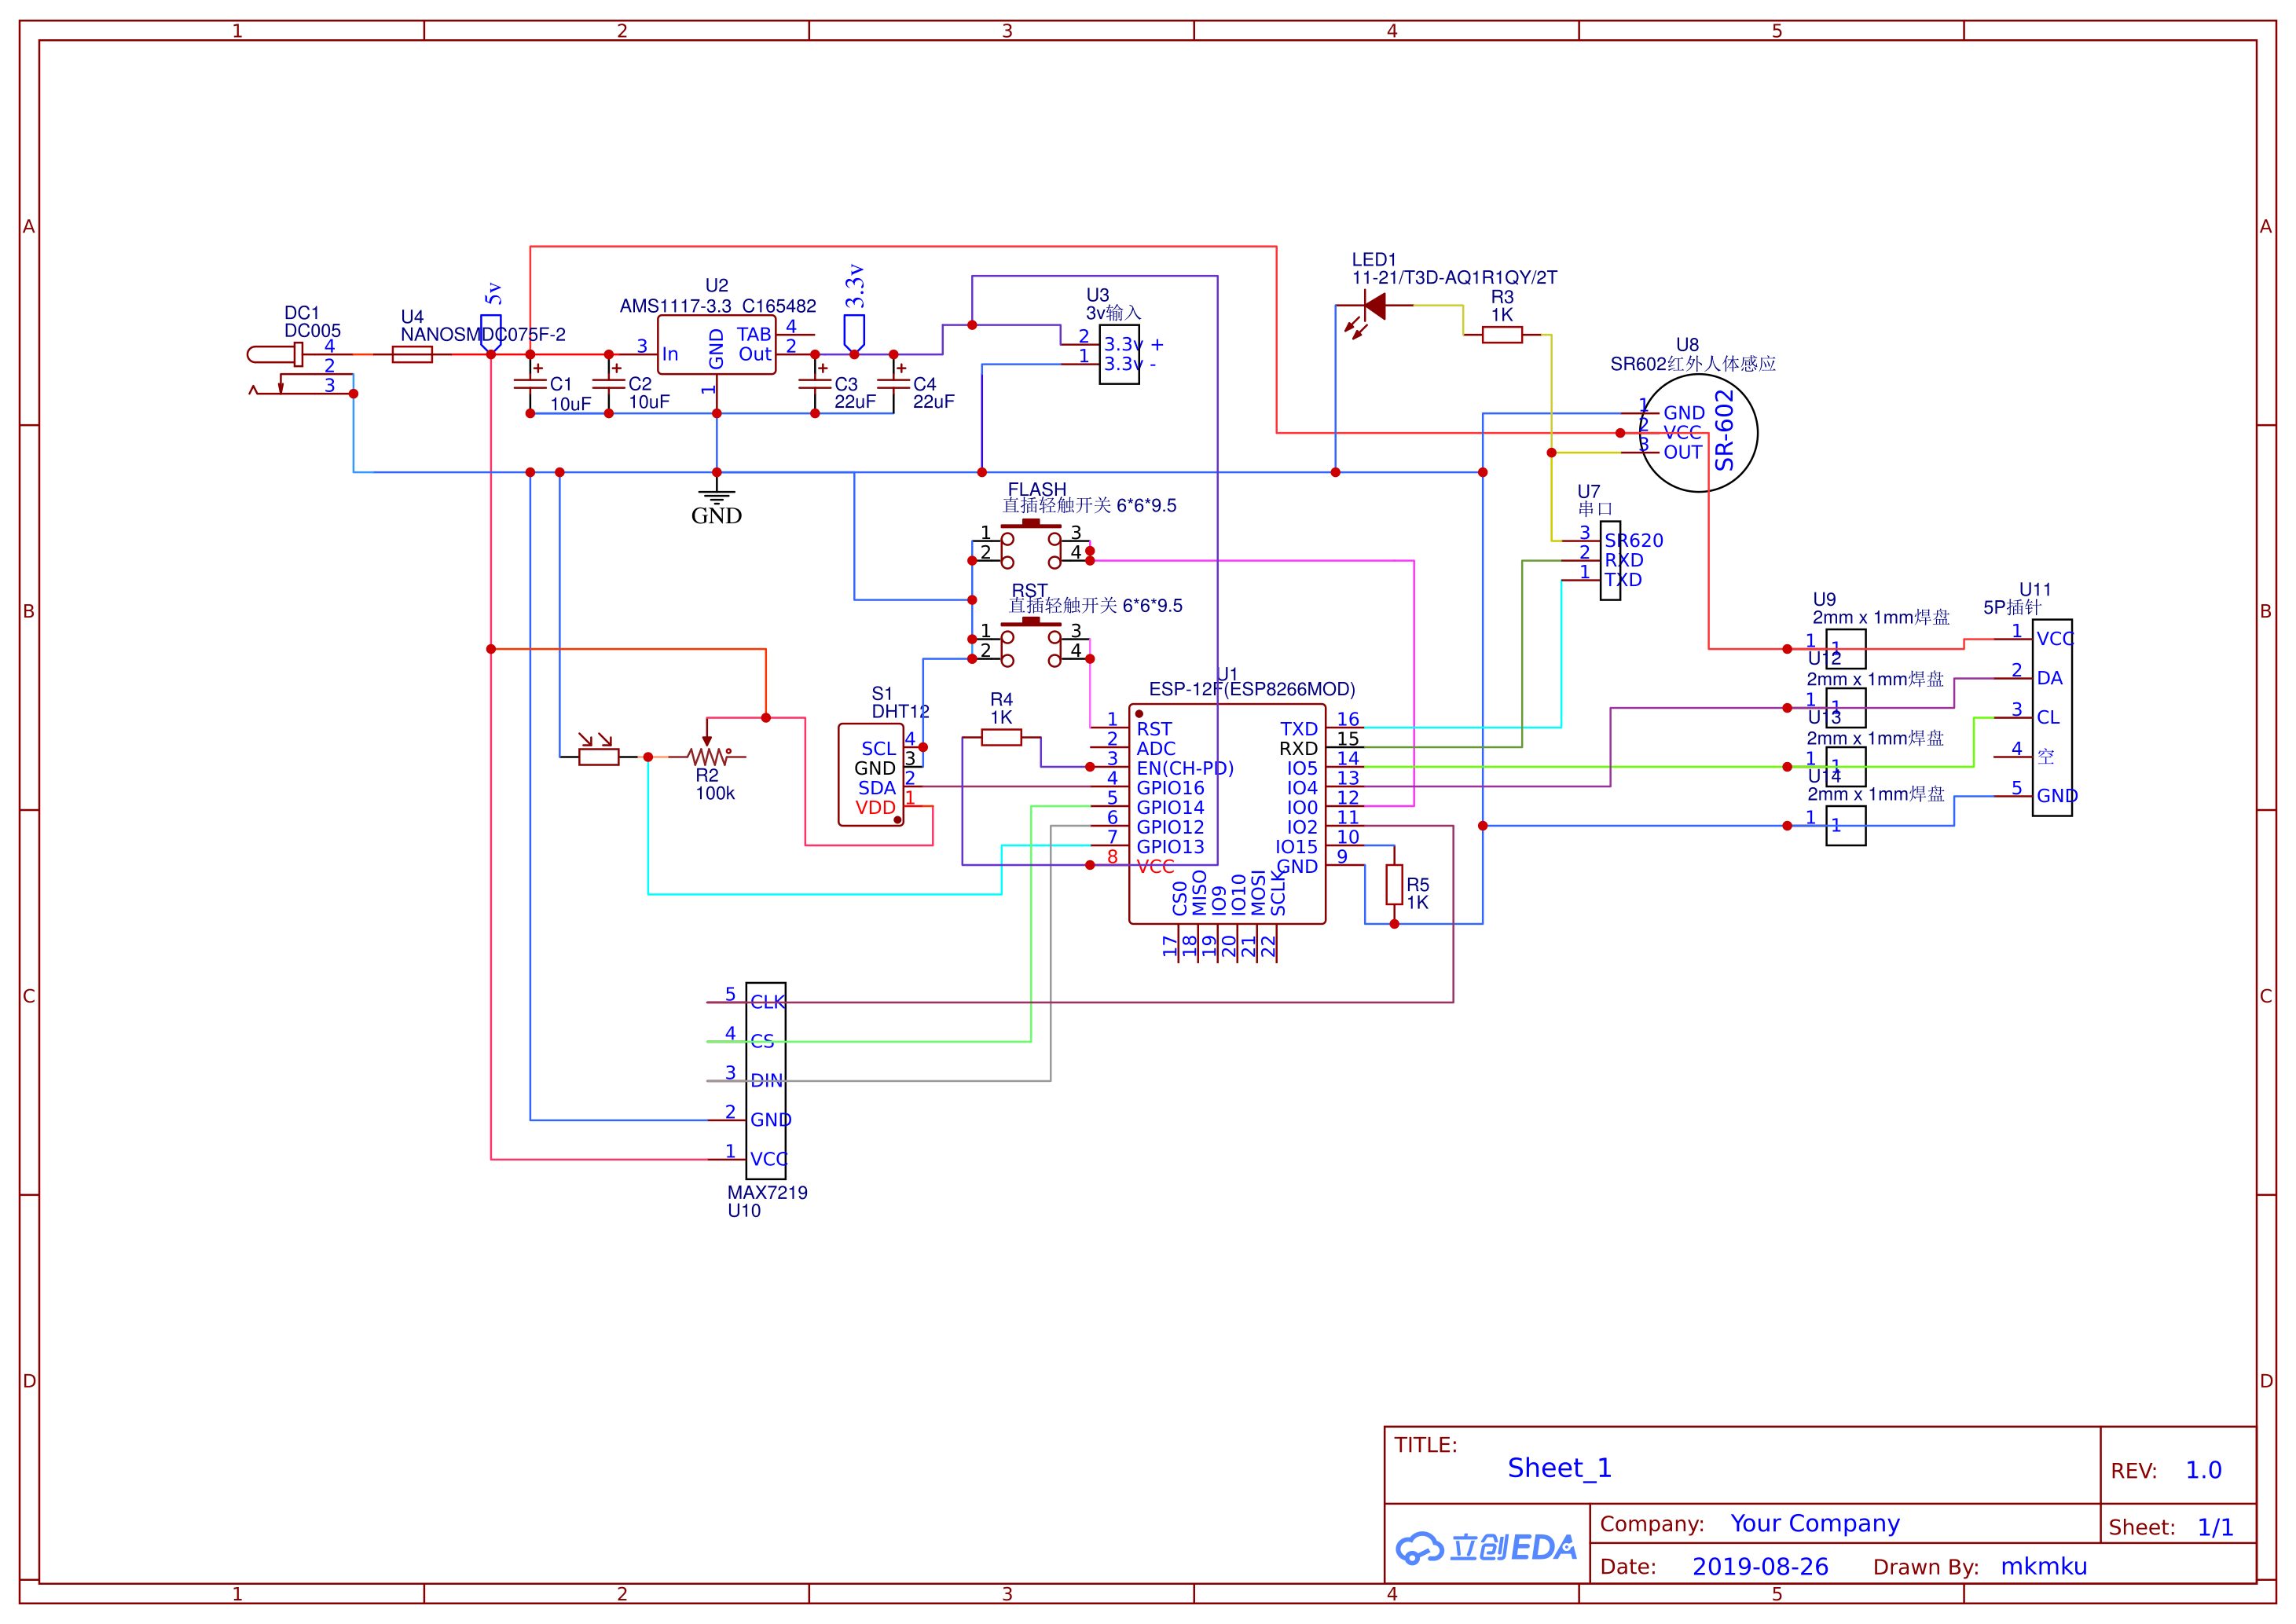 Schematic_WiFi_Sheet-1_20190901204030.png